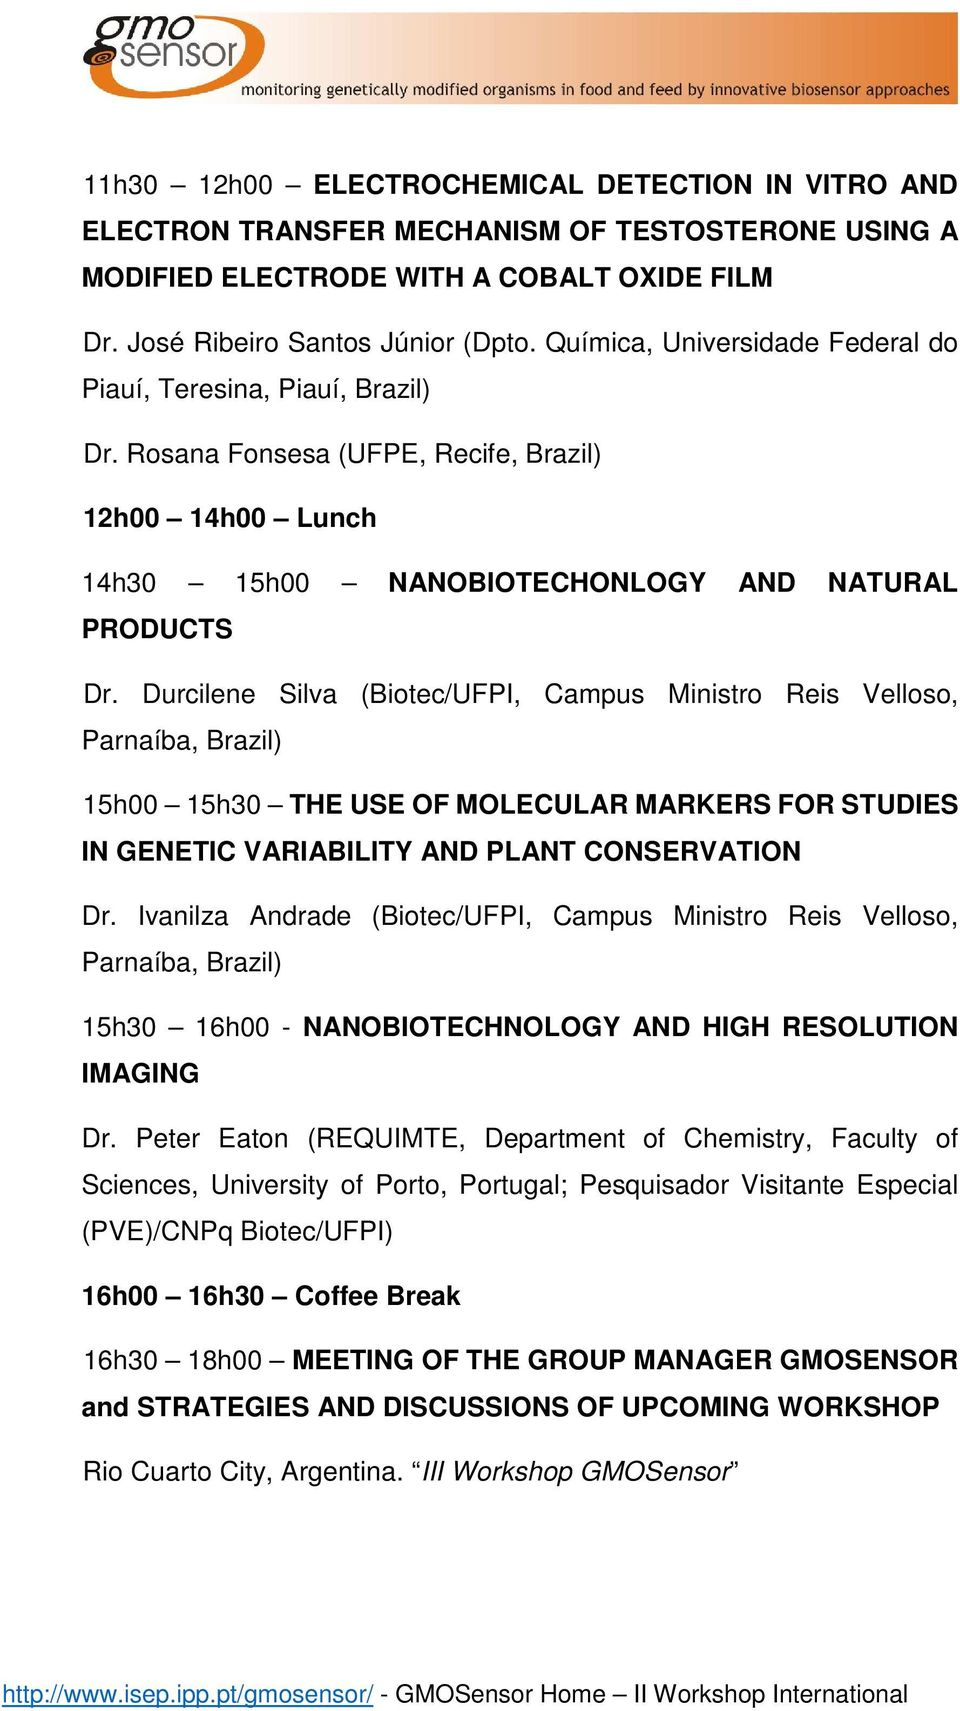 Durcilene Silva (Biotec/UFPI, Campus Ministro Reis Velloso, Parnaíba, Brazil) 15h00 15h30 THE USE OF MOLECULAR MARKERS FOR STUDIES IN GENETIC VARIABILITY AND PLANT CONSERVATION Dr.